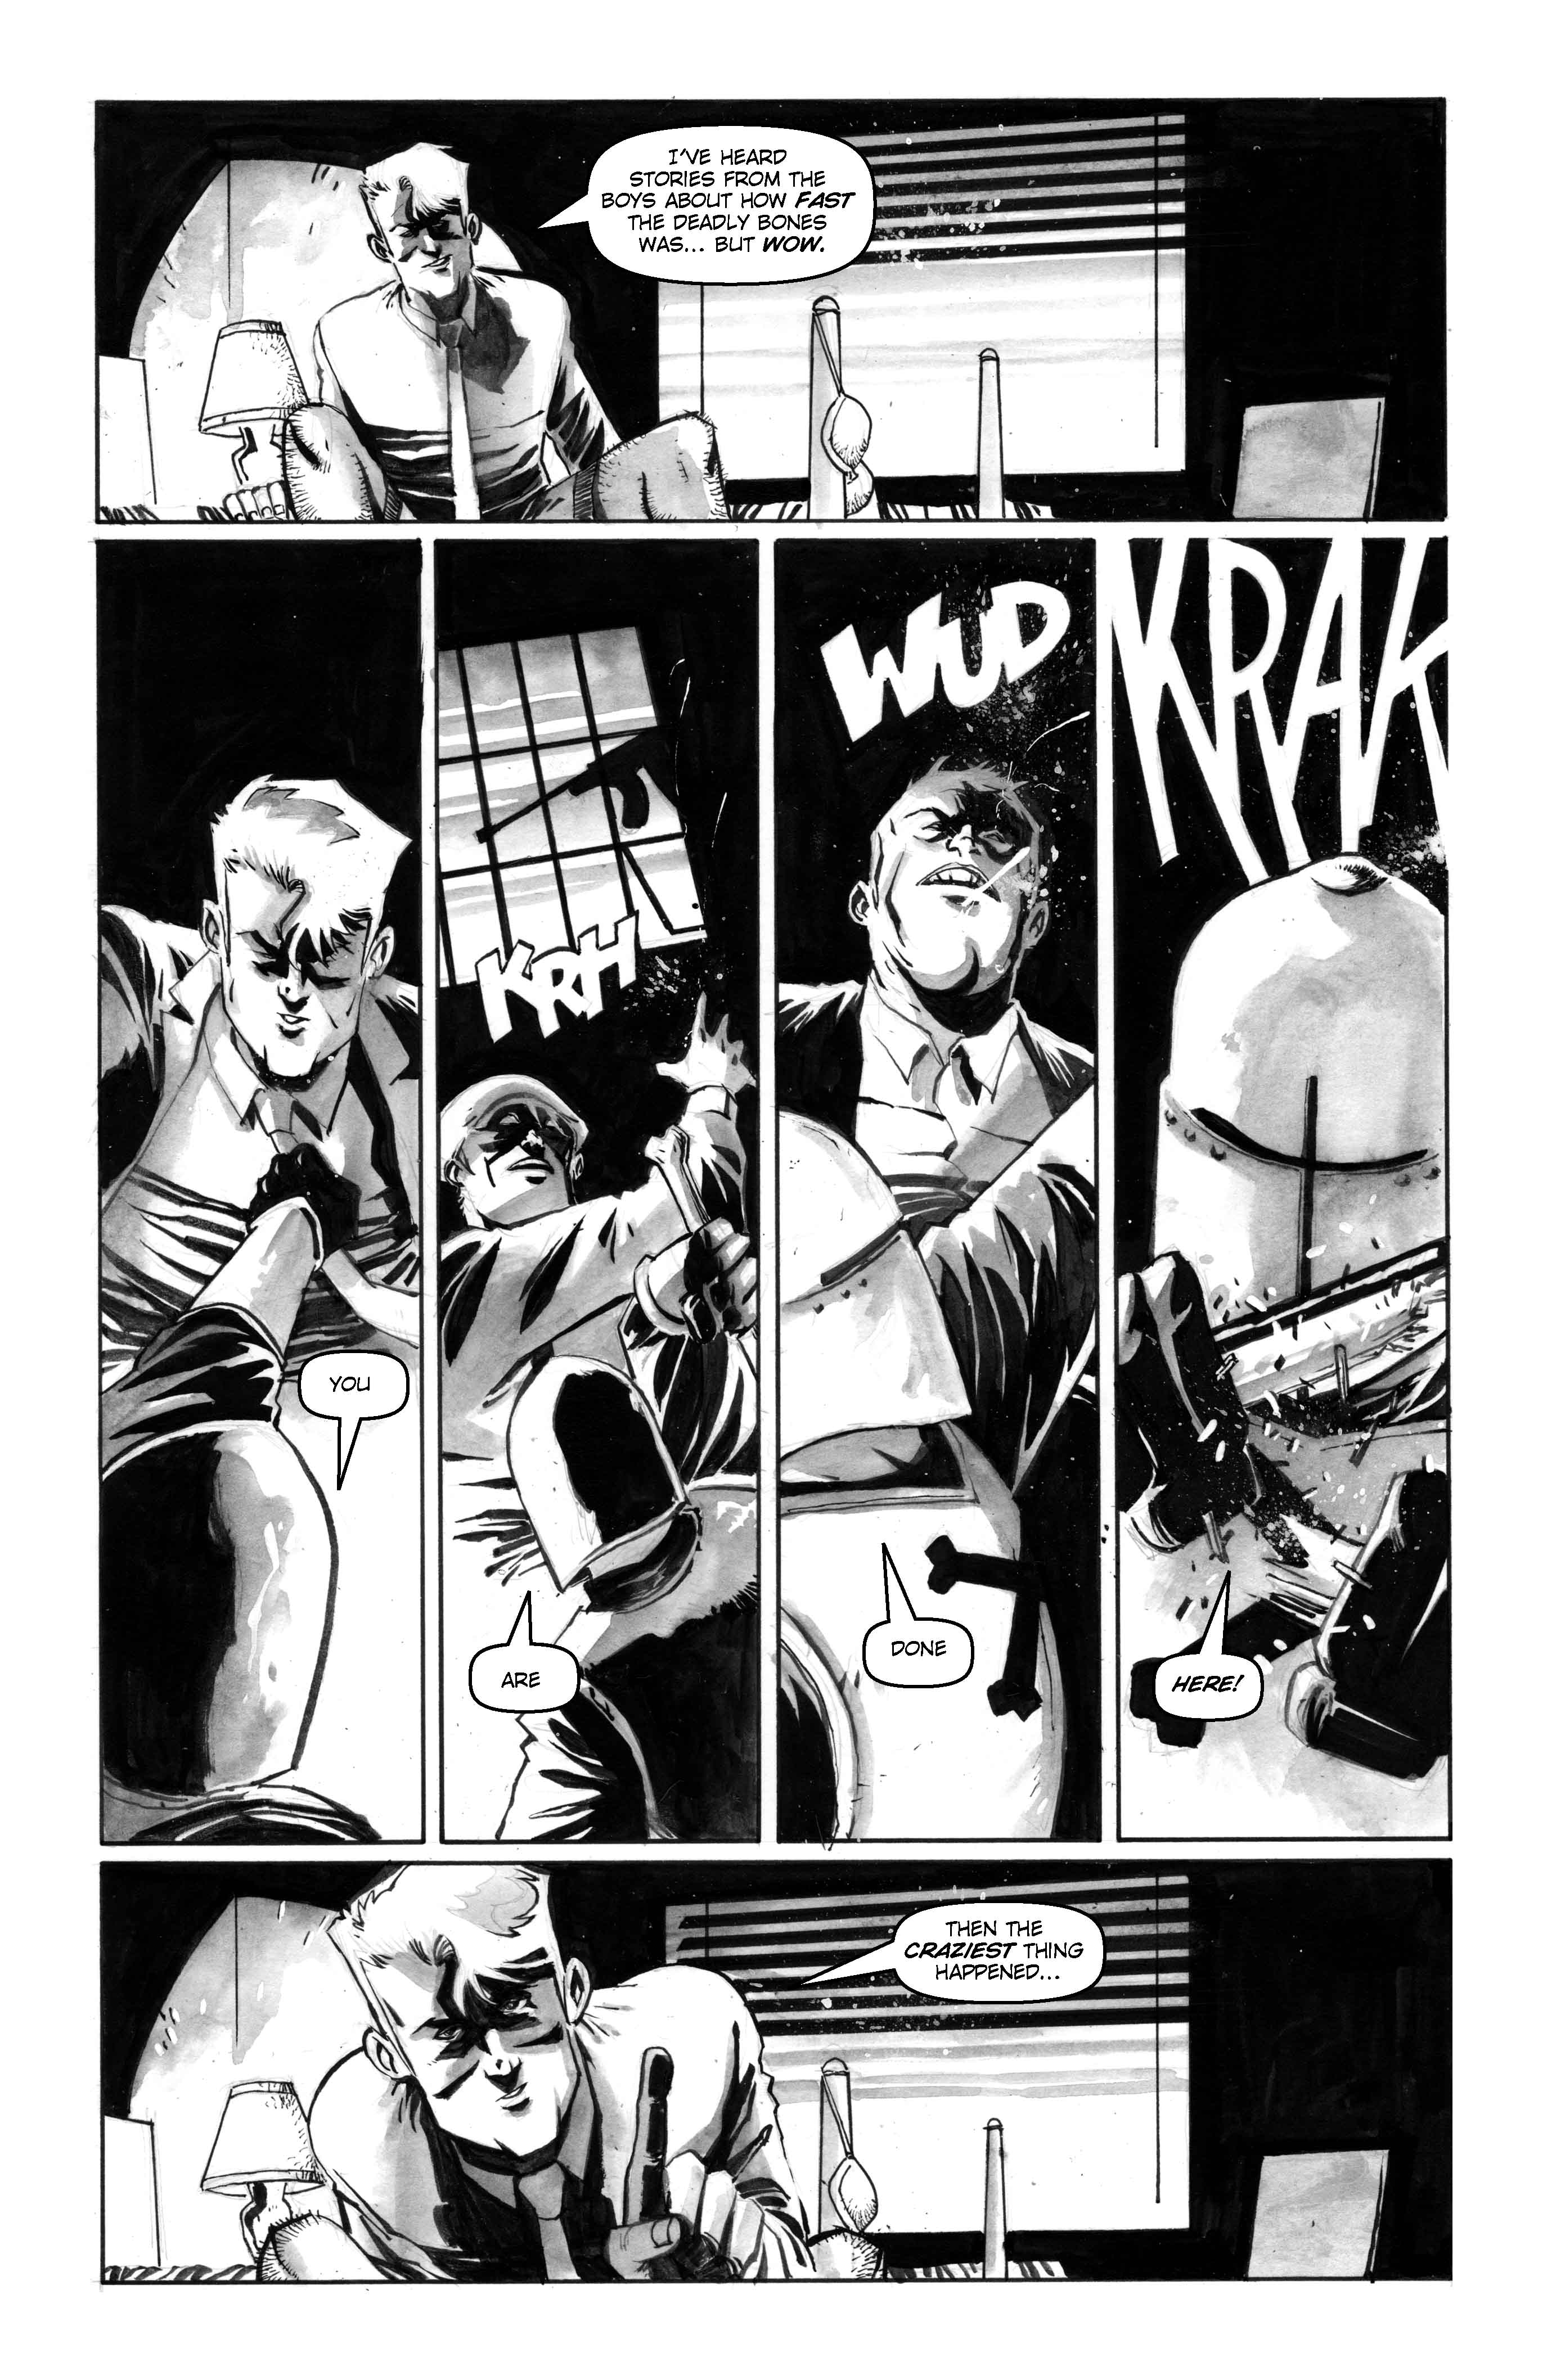 Preview - Masks and Mobsters #3 | Graphic Policy